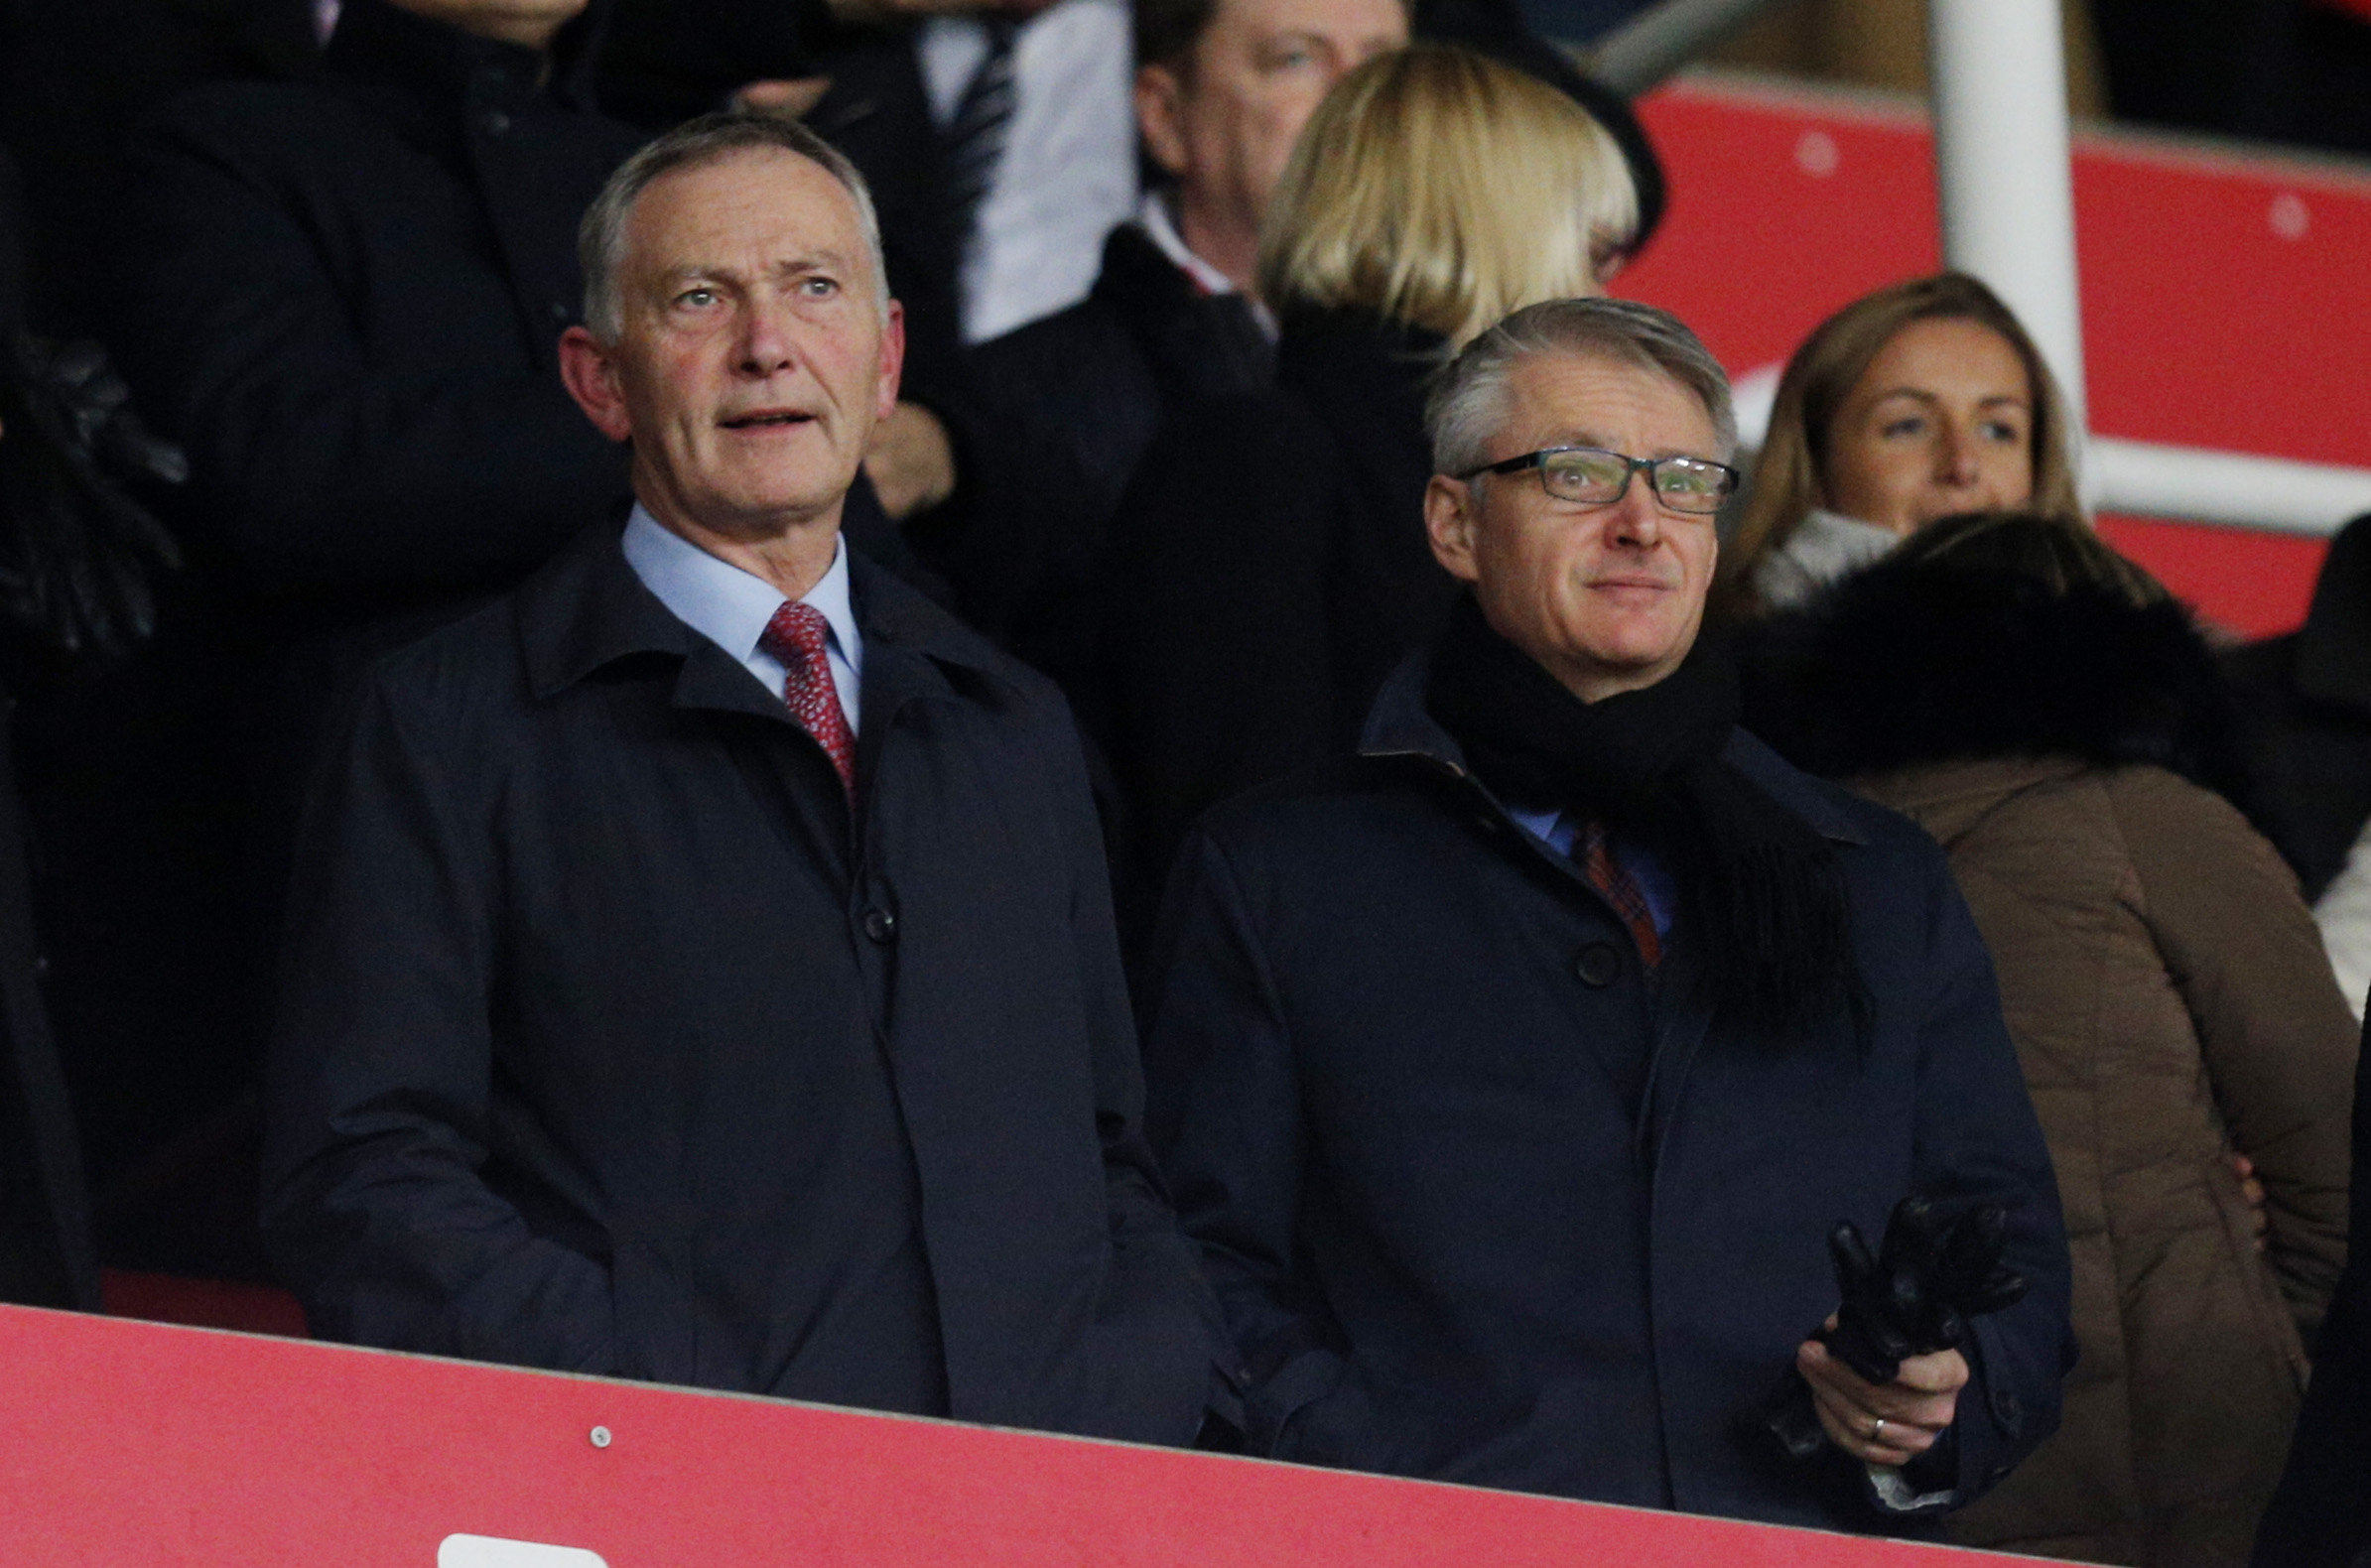 Premier League chief Richard Scudamore has acted as a go-between for the top-flight clubs. Picture: Action Images